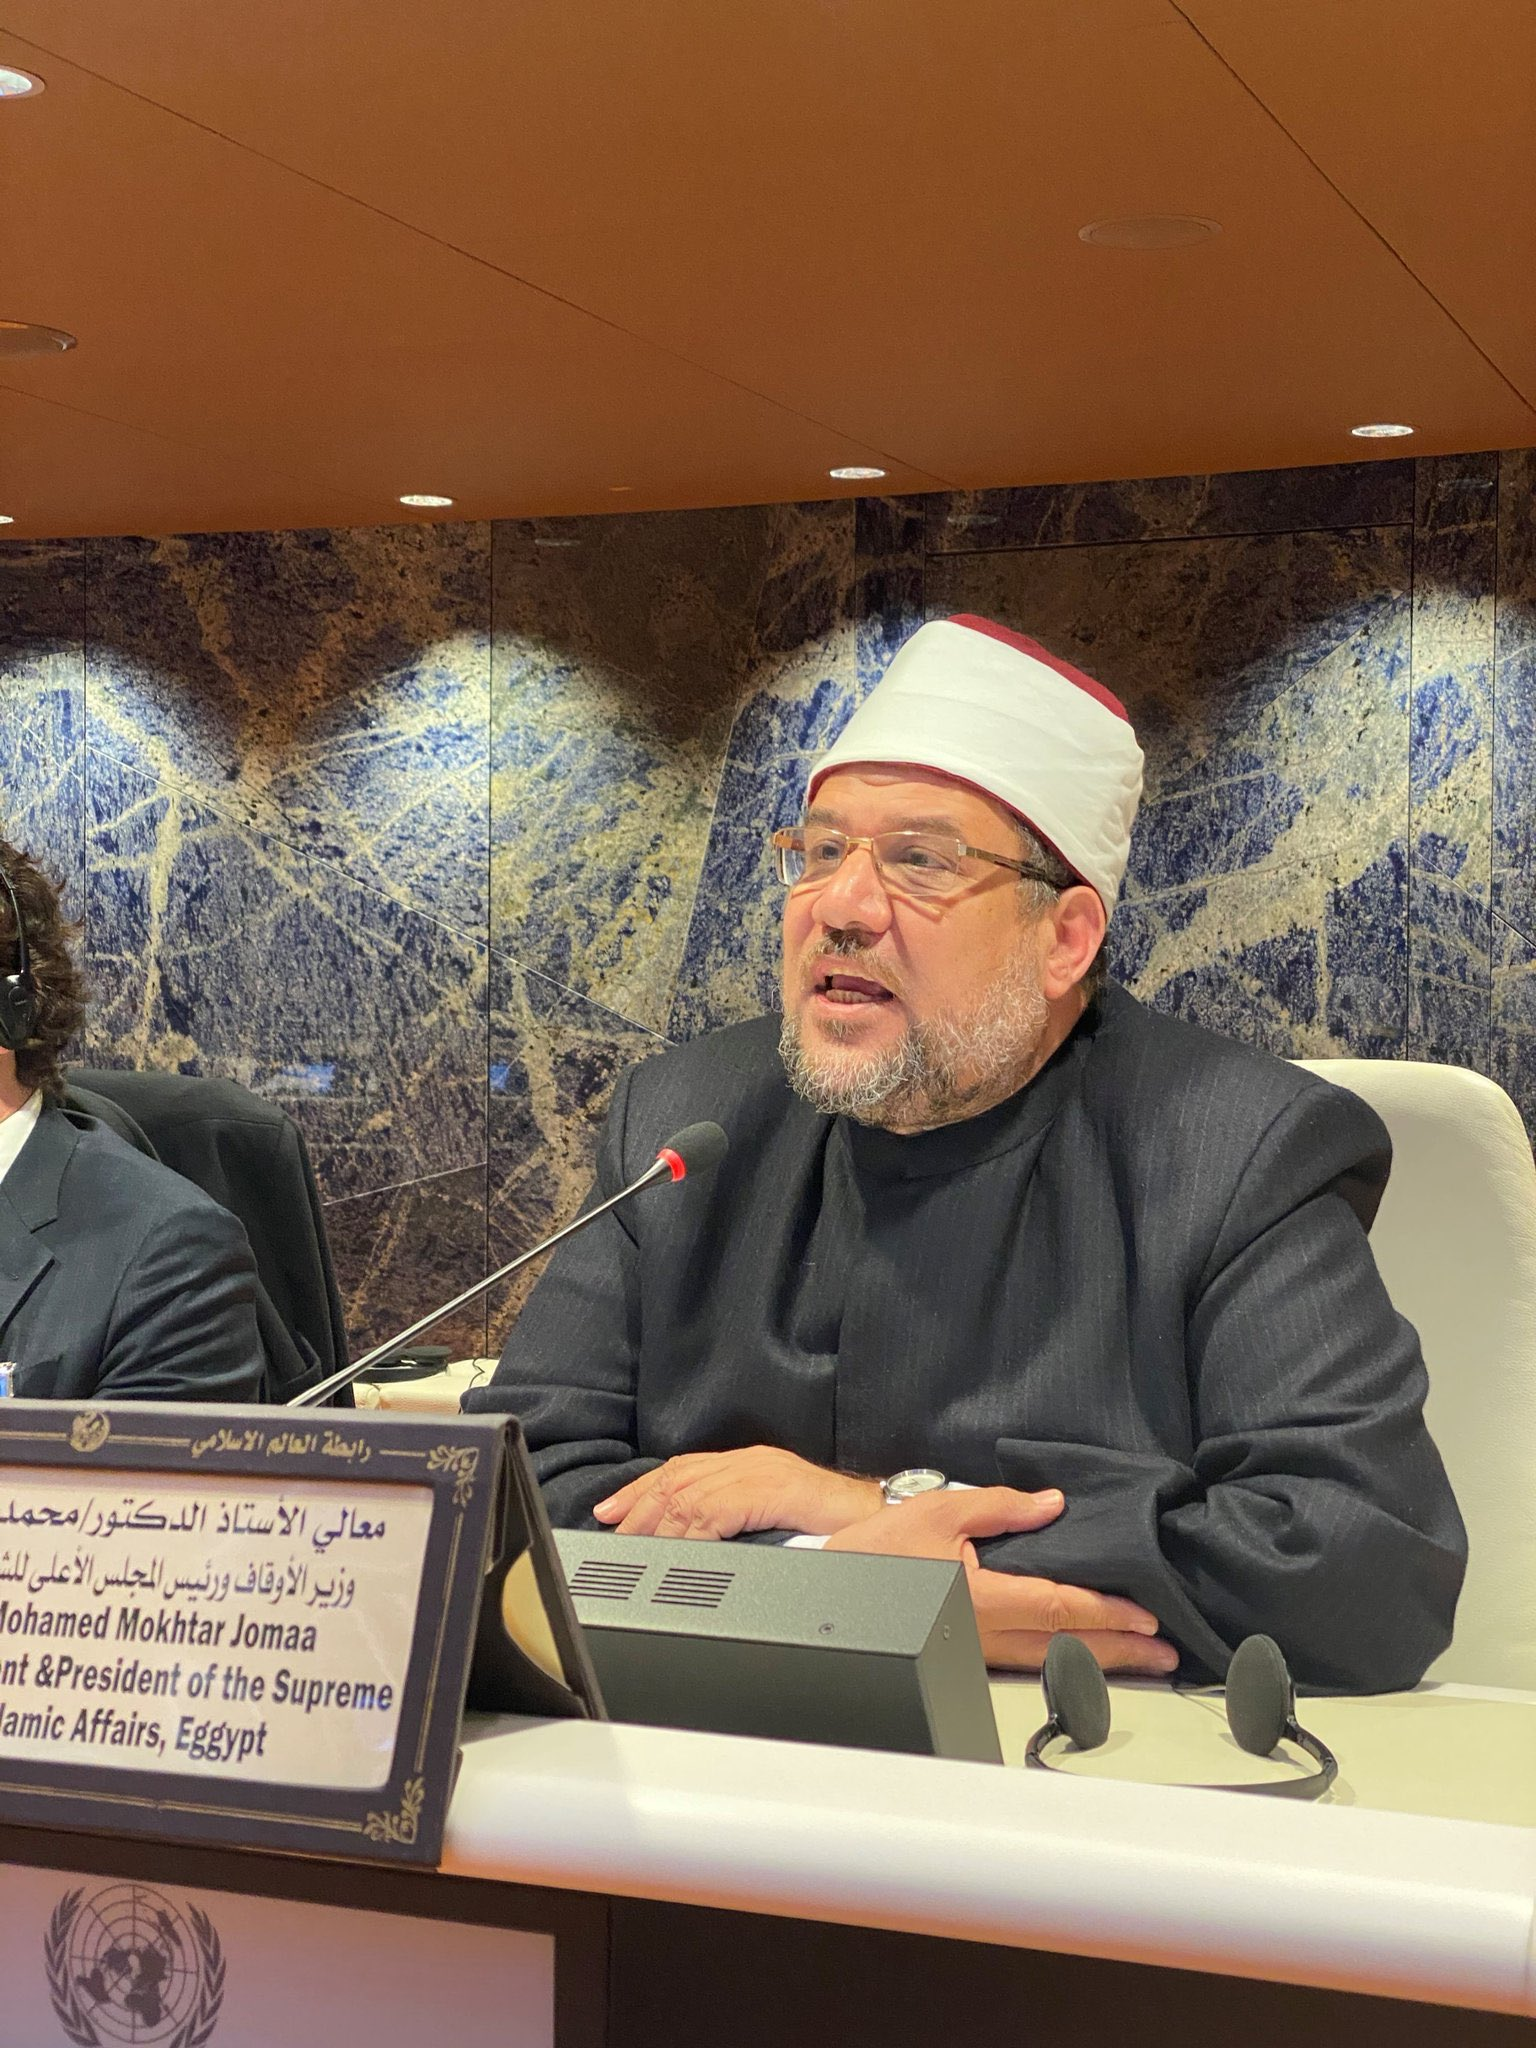 HE Dr. Mohamed Mokhtar Gomaa, Minister of Religious Endowments of Egypt stressed the global need for security, and the collective responsibility to maintain it